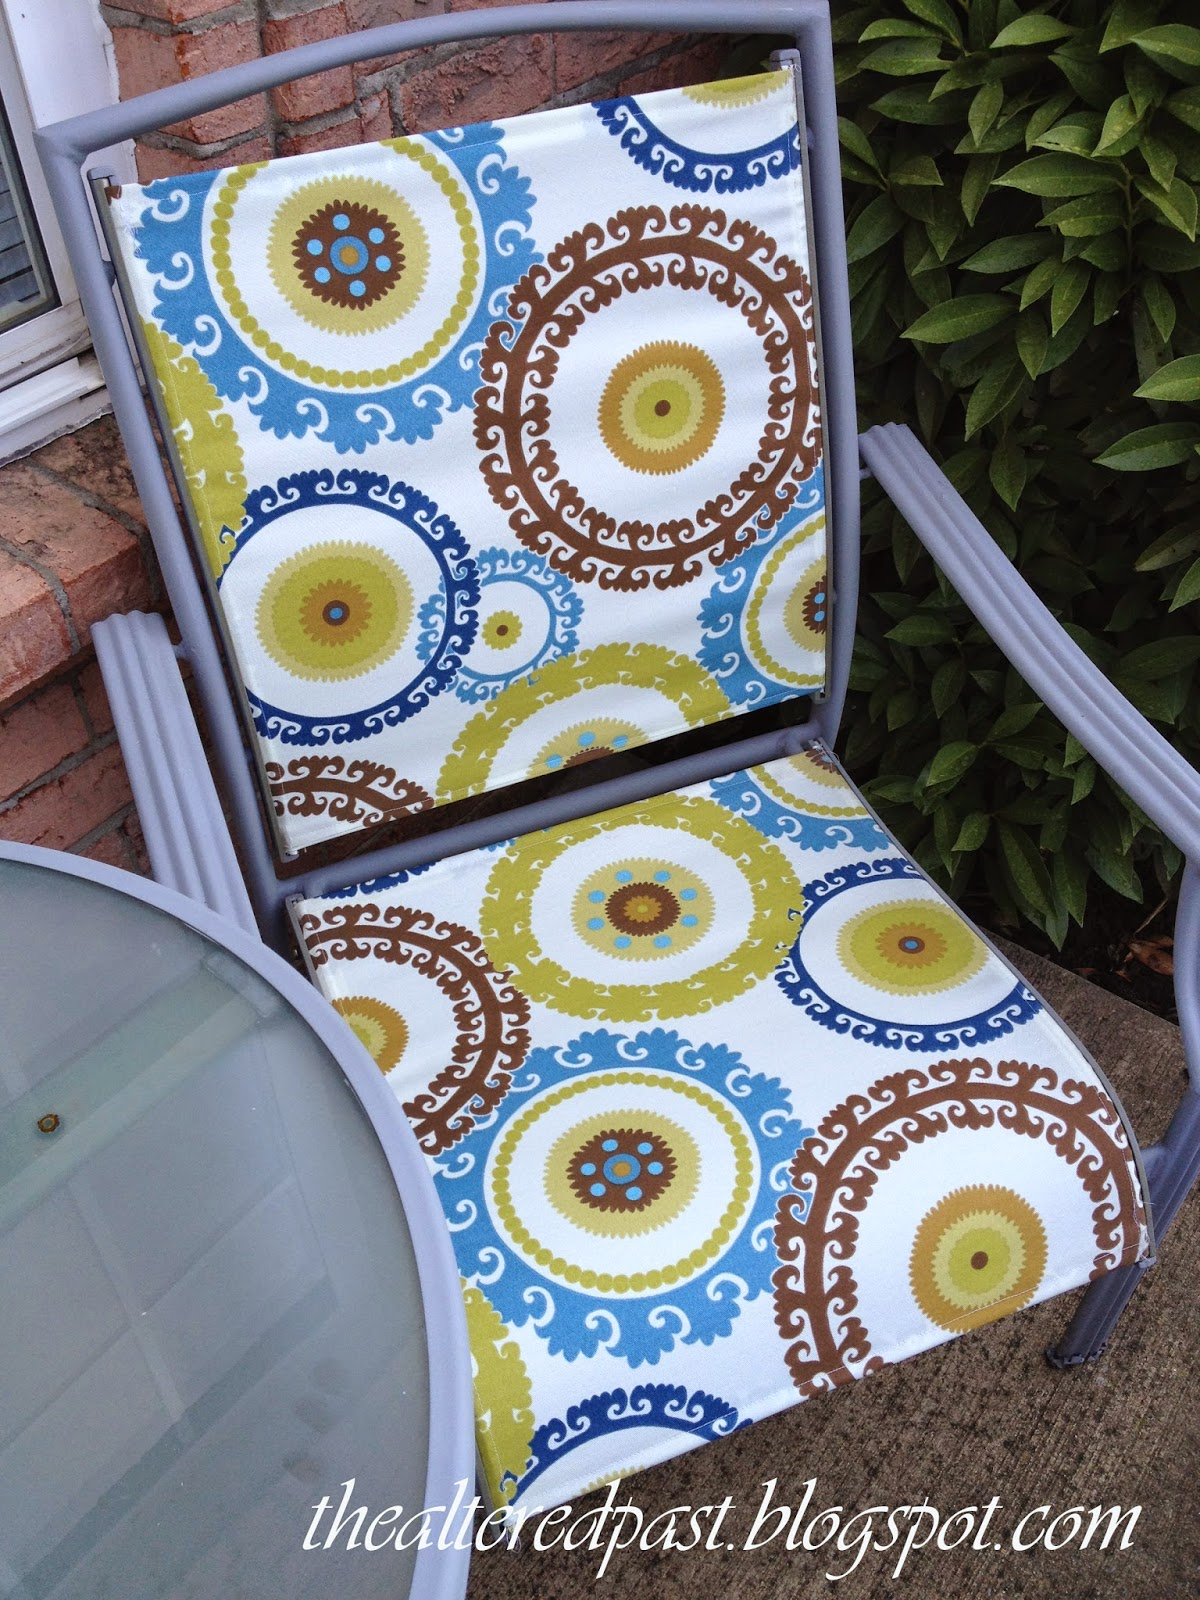 Redo Sling Patio Chairs Chair That Turns Into A Bed Spain Hill Farm Set